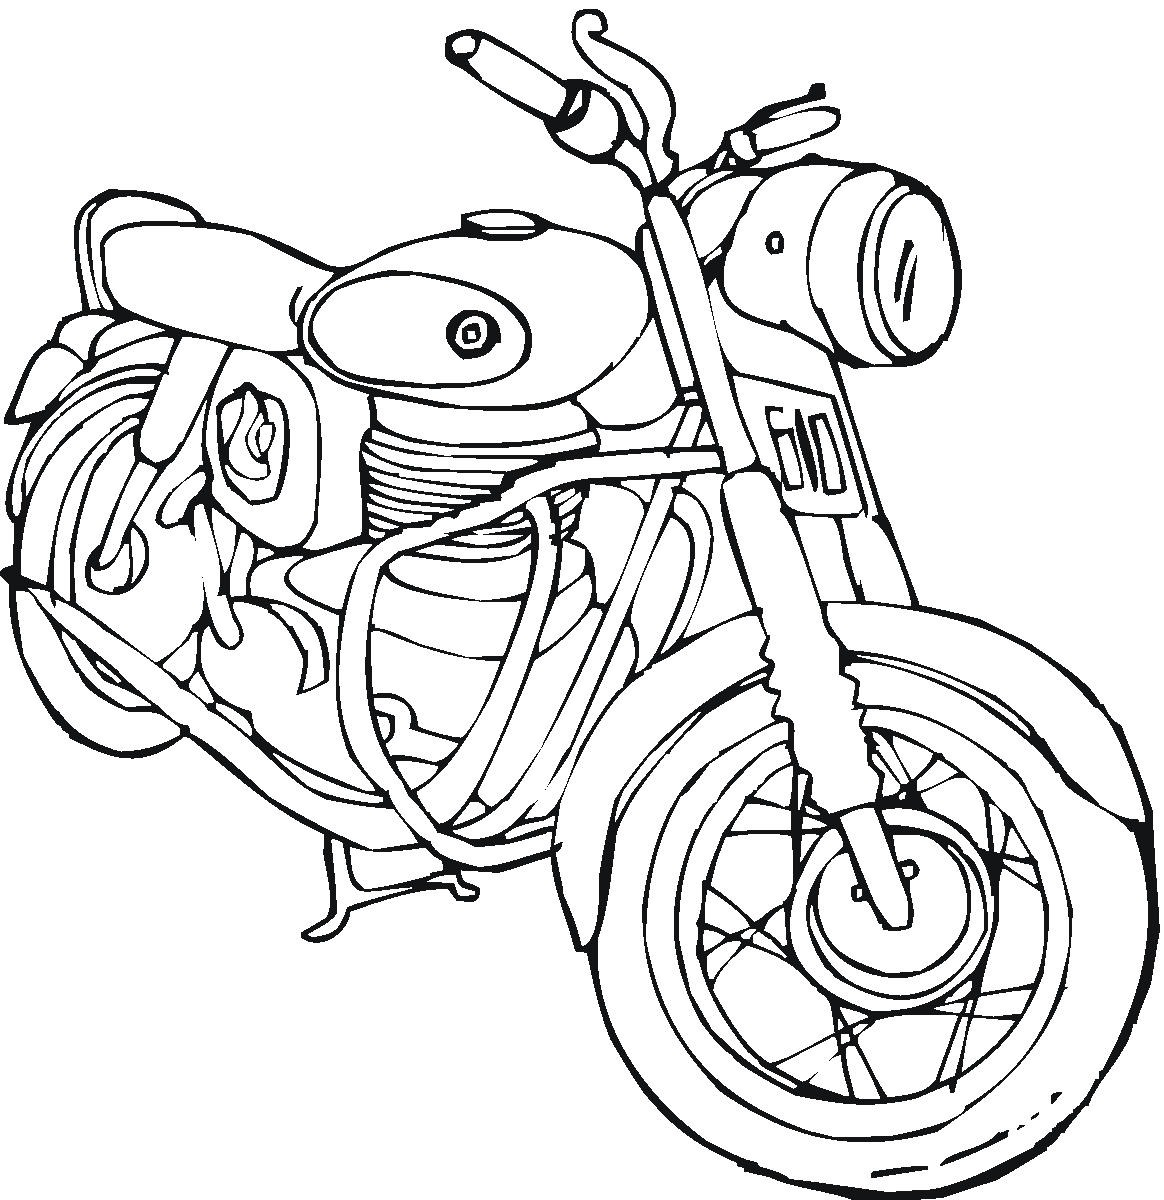 bike coloring pages - photo #34